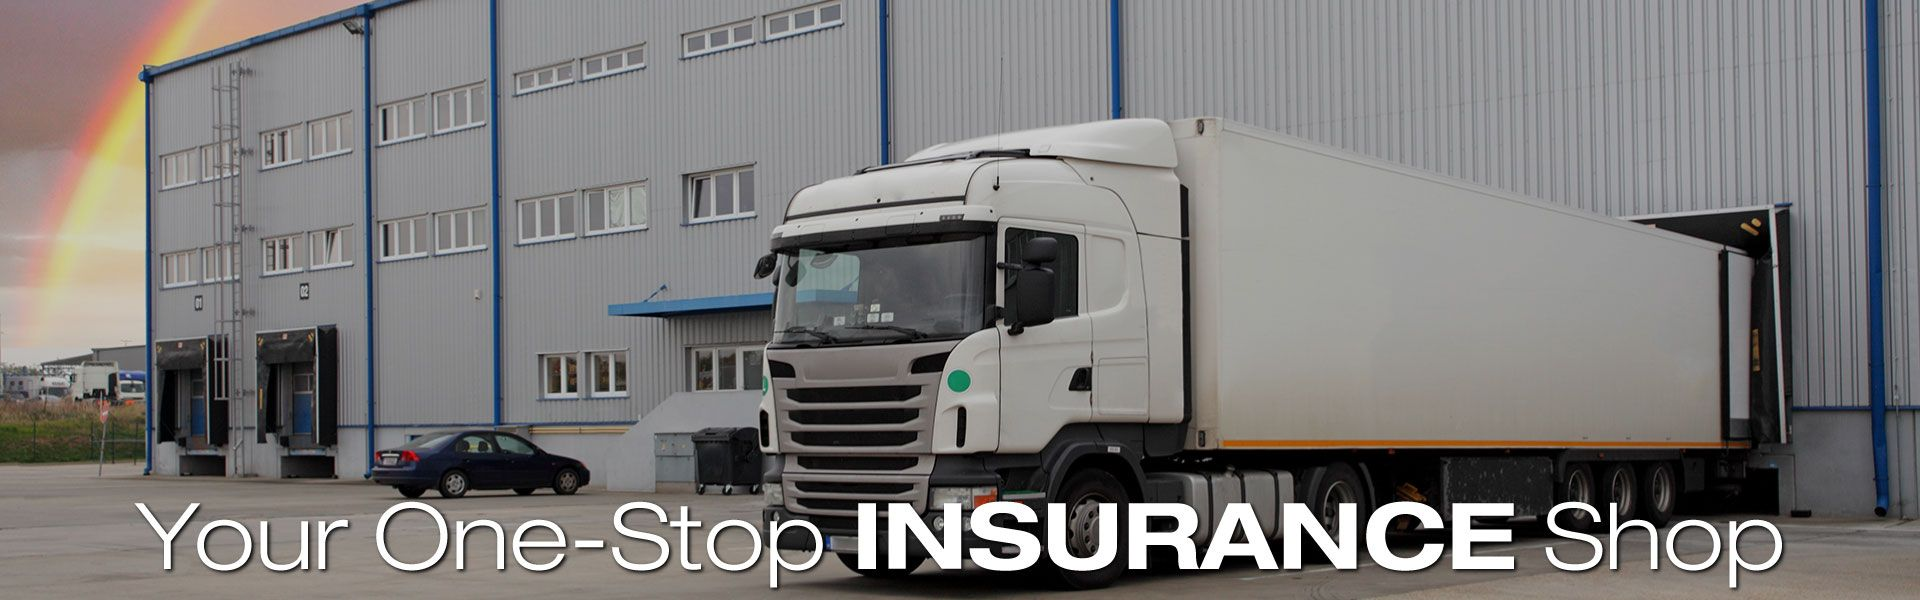 Your One-Stop Insurance Shop | Semi truck next to warehouse